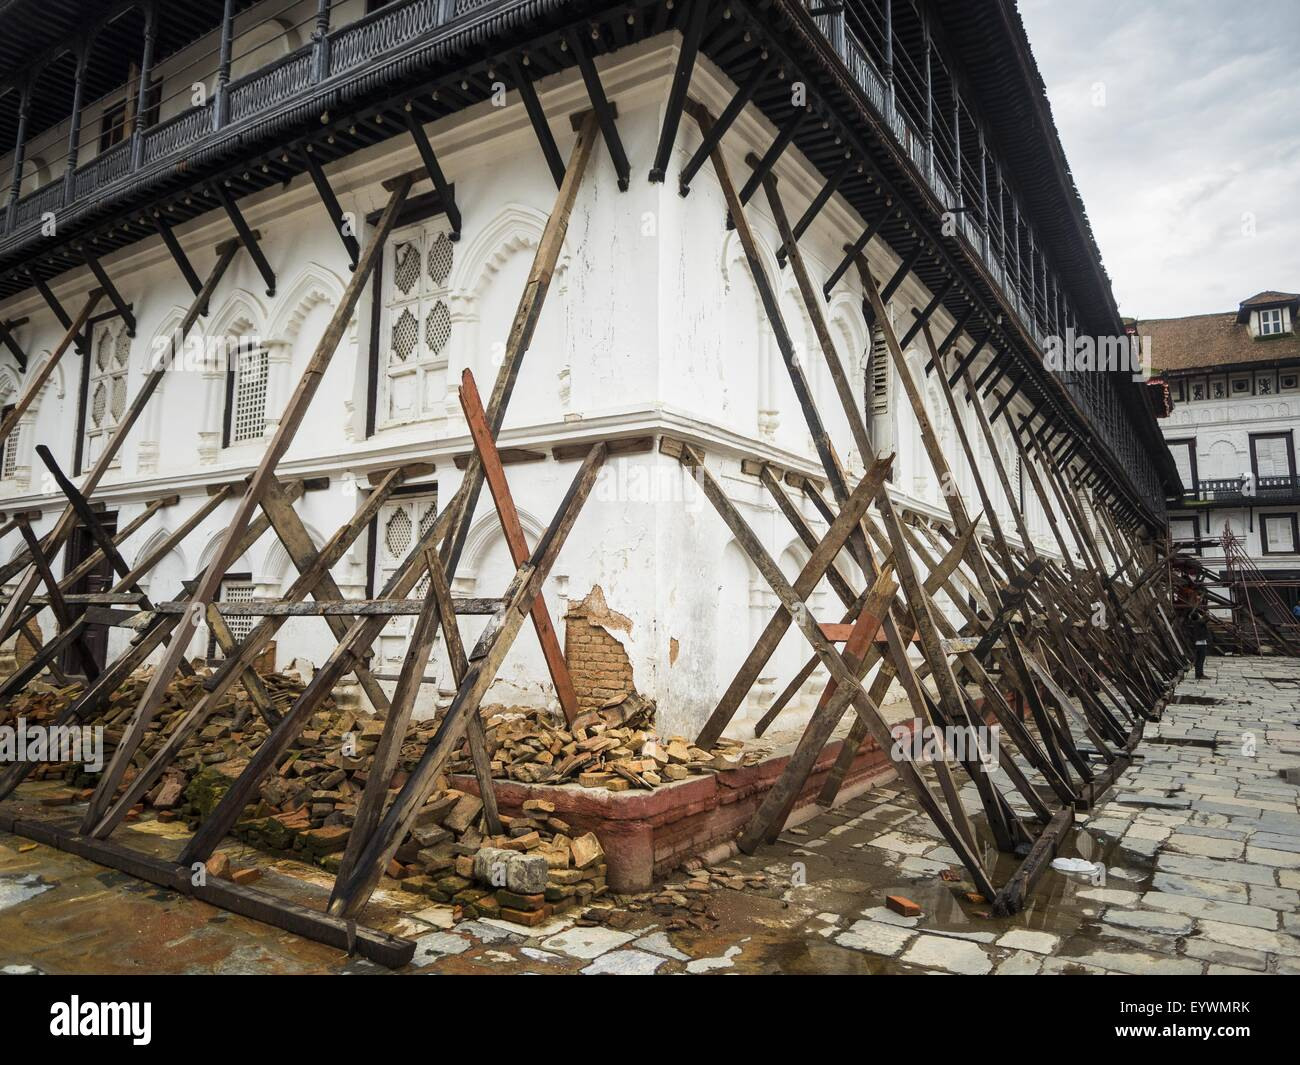 July 30, 2015 - Kathmandu, Nepal - Walls of the Sundari Chowk propped up with timbers after the earthquake in Durbar - Stock Image